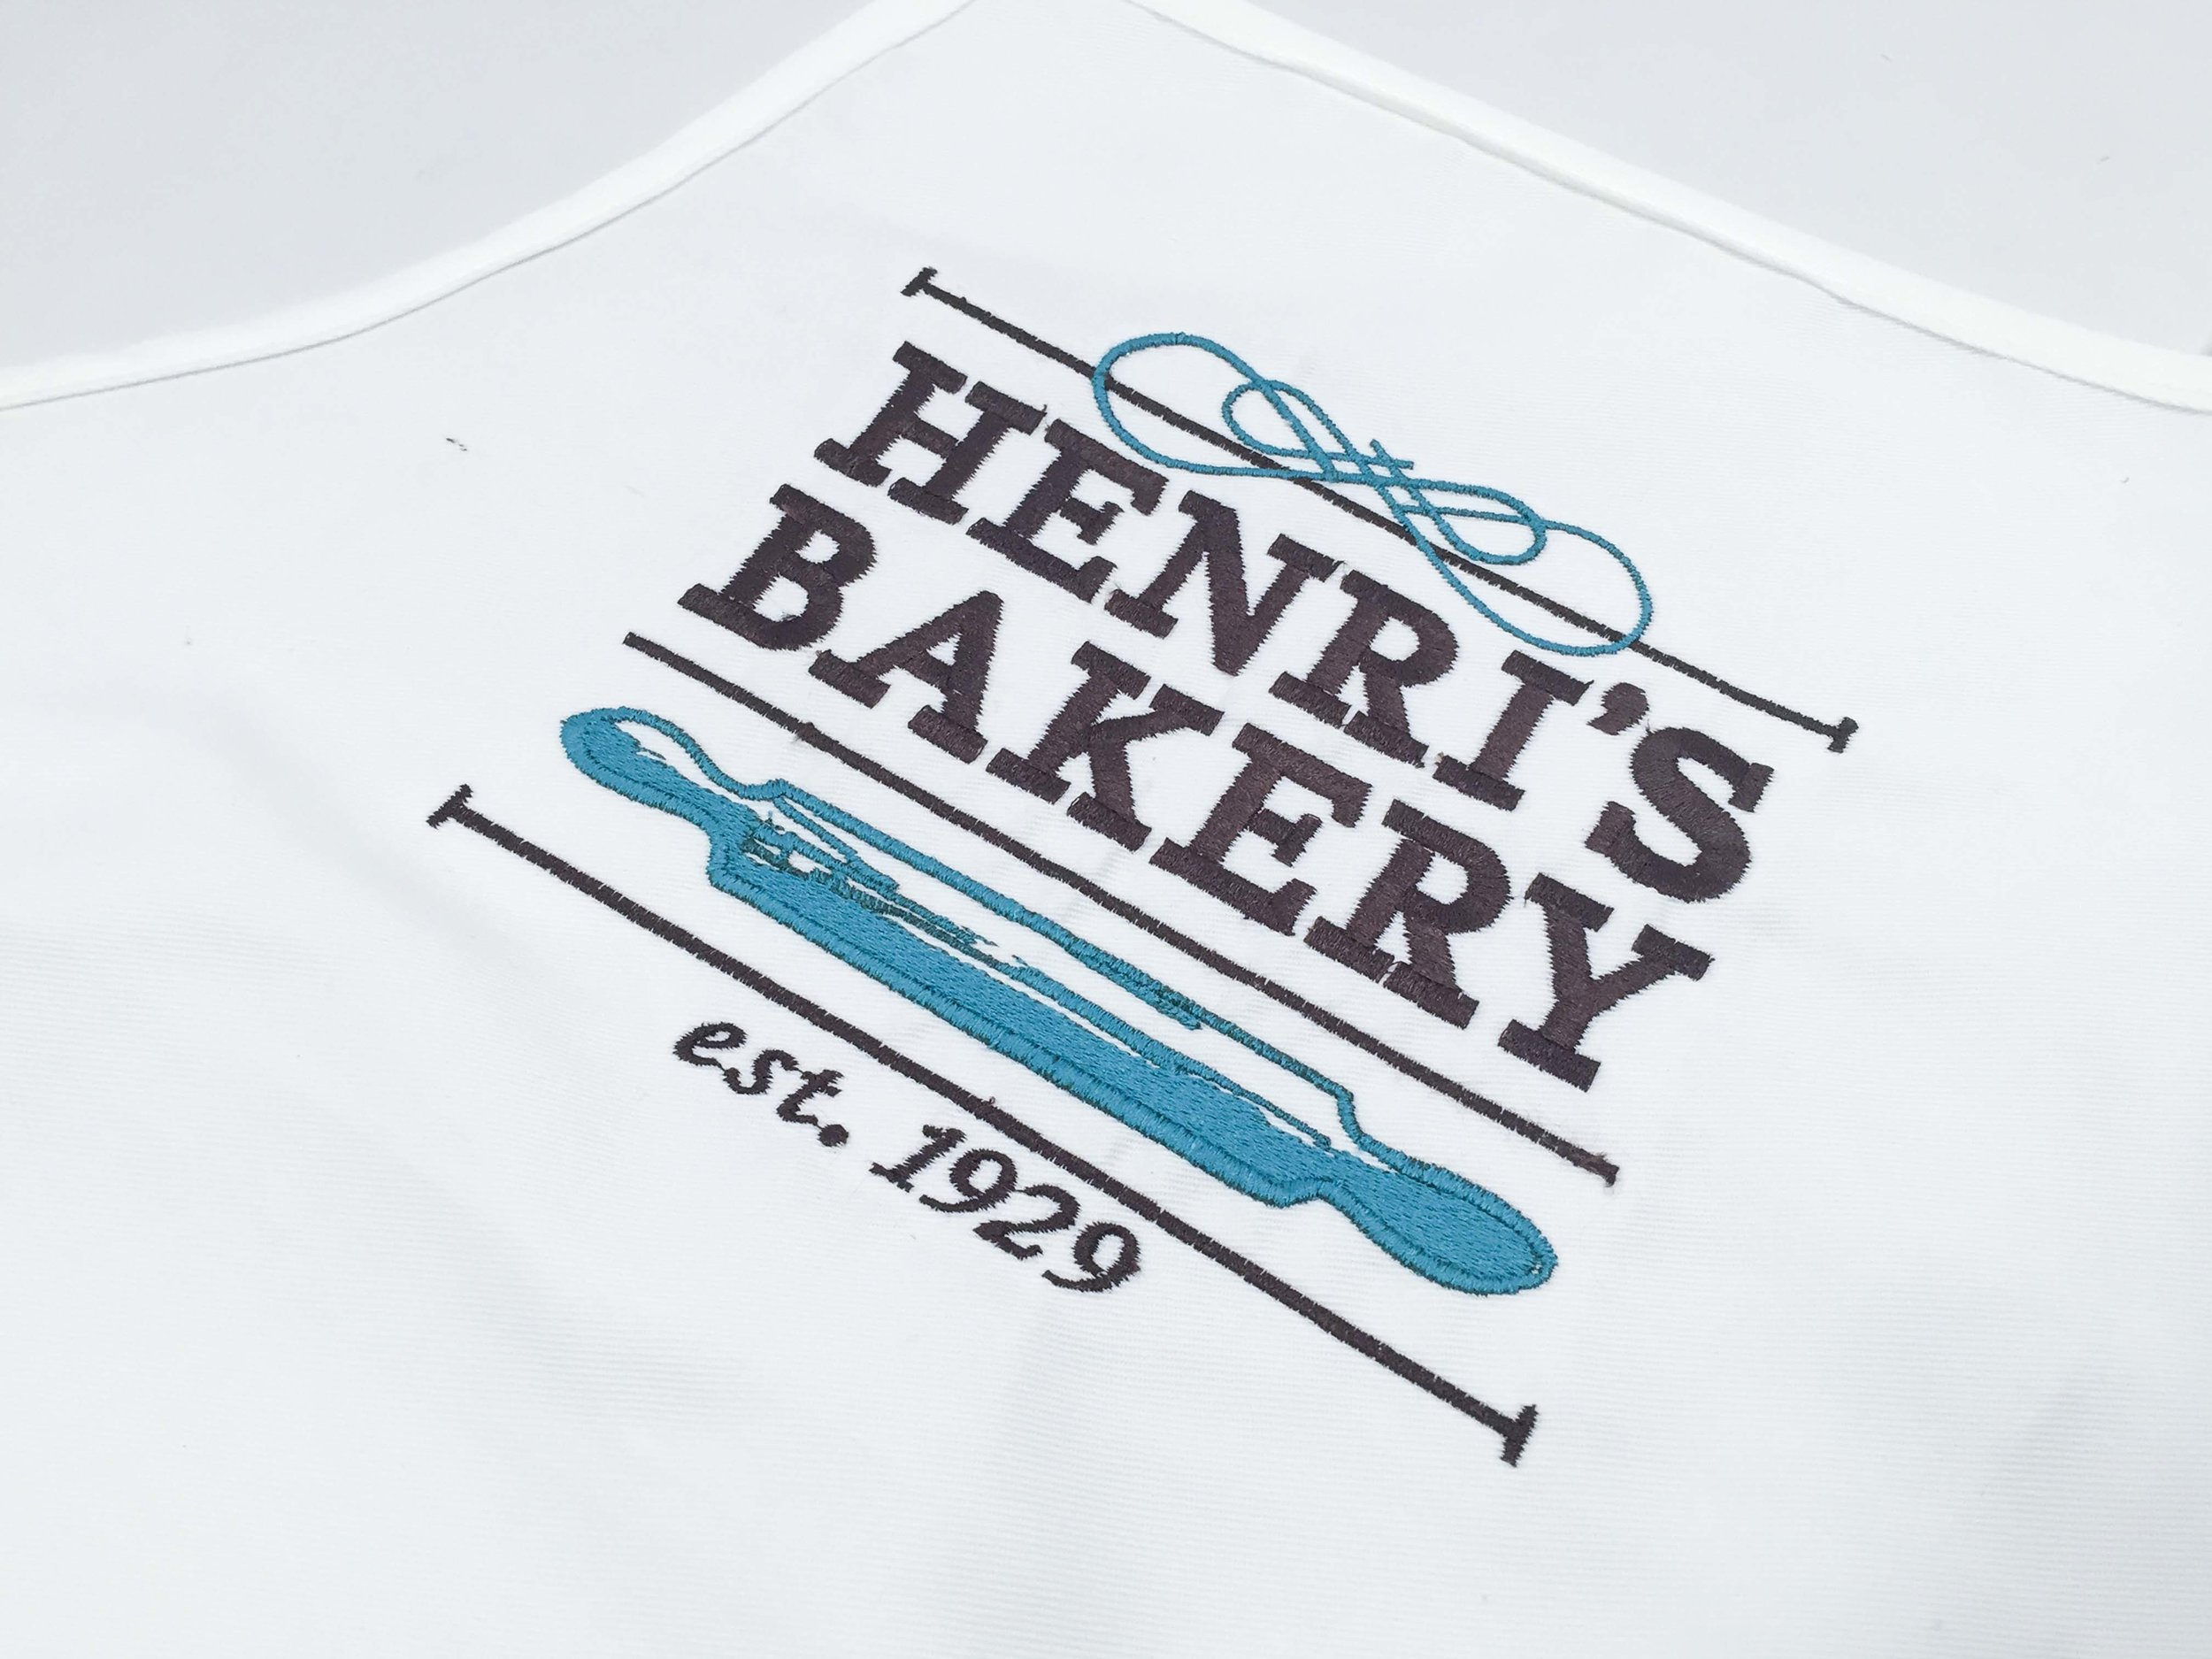 HENRI'S BAKERY - Henri's Bakery is a landmark to historic Buckhead in Atlanta, Georgia. I created this redesign during Studio 2 in Spring 2015 to give Henri's a modern yet traditional new identity. The system includes a modular combination mark featuring three colors and three baking utensils. That was then applied to stationery, packaging, promotional items, and their website.